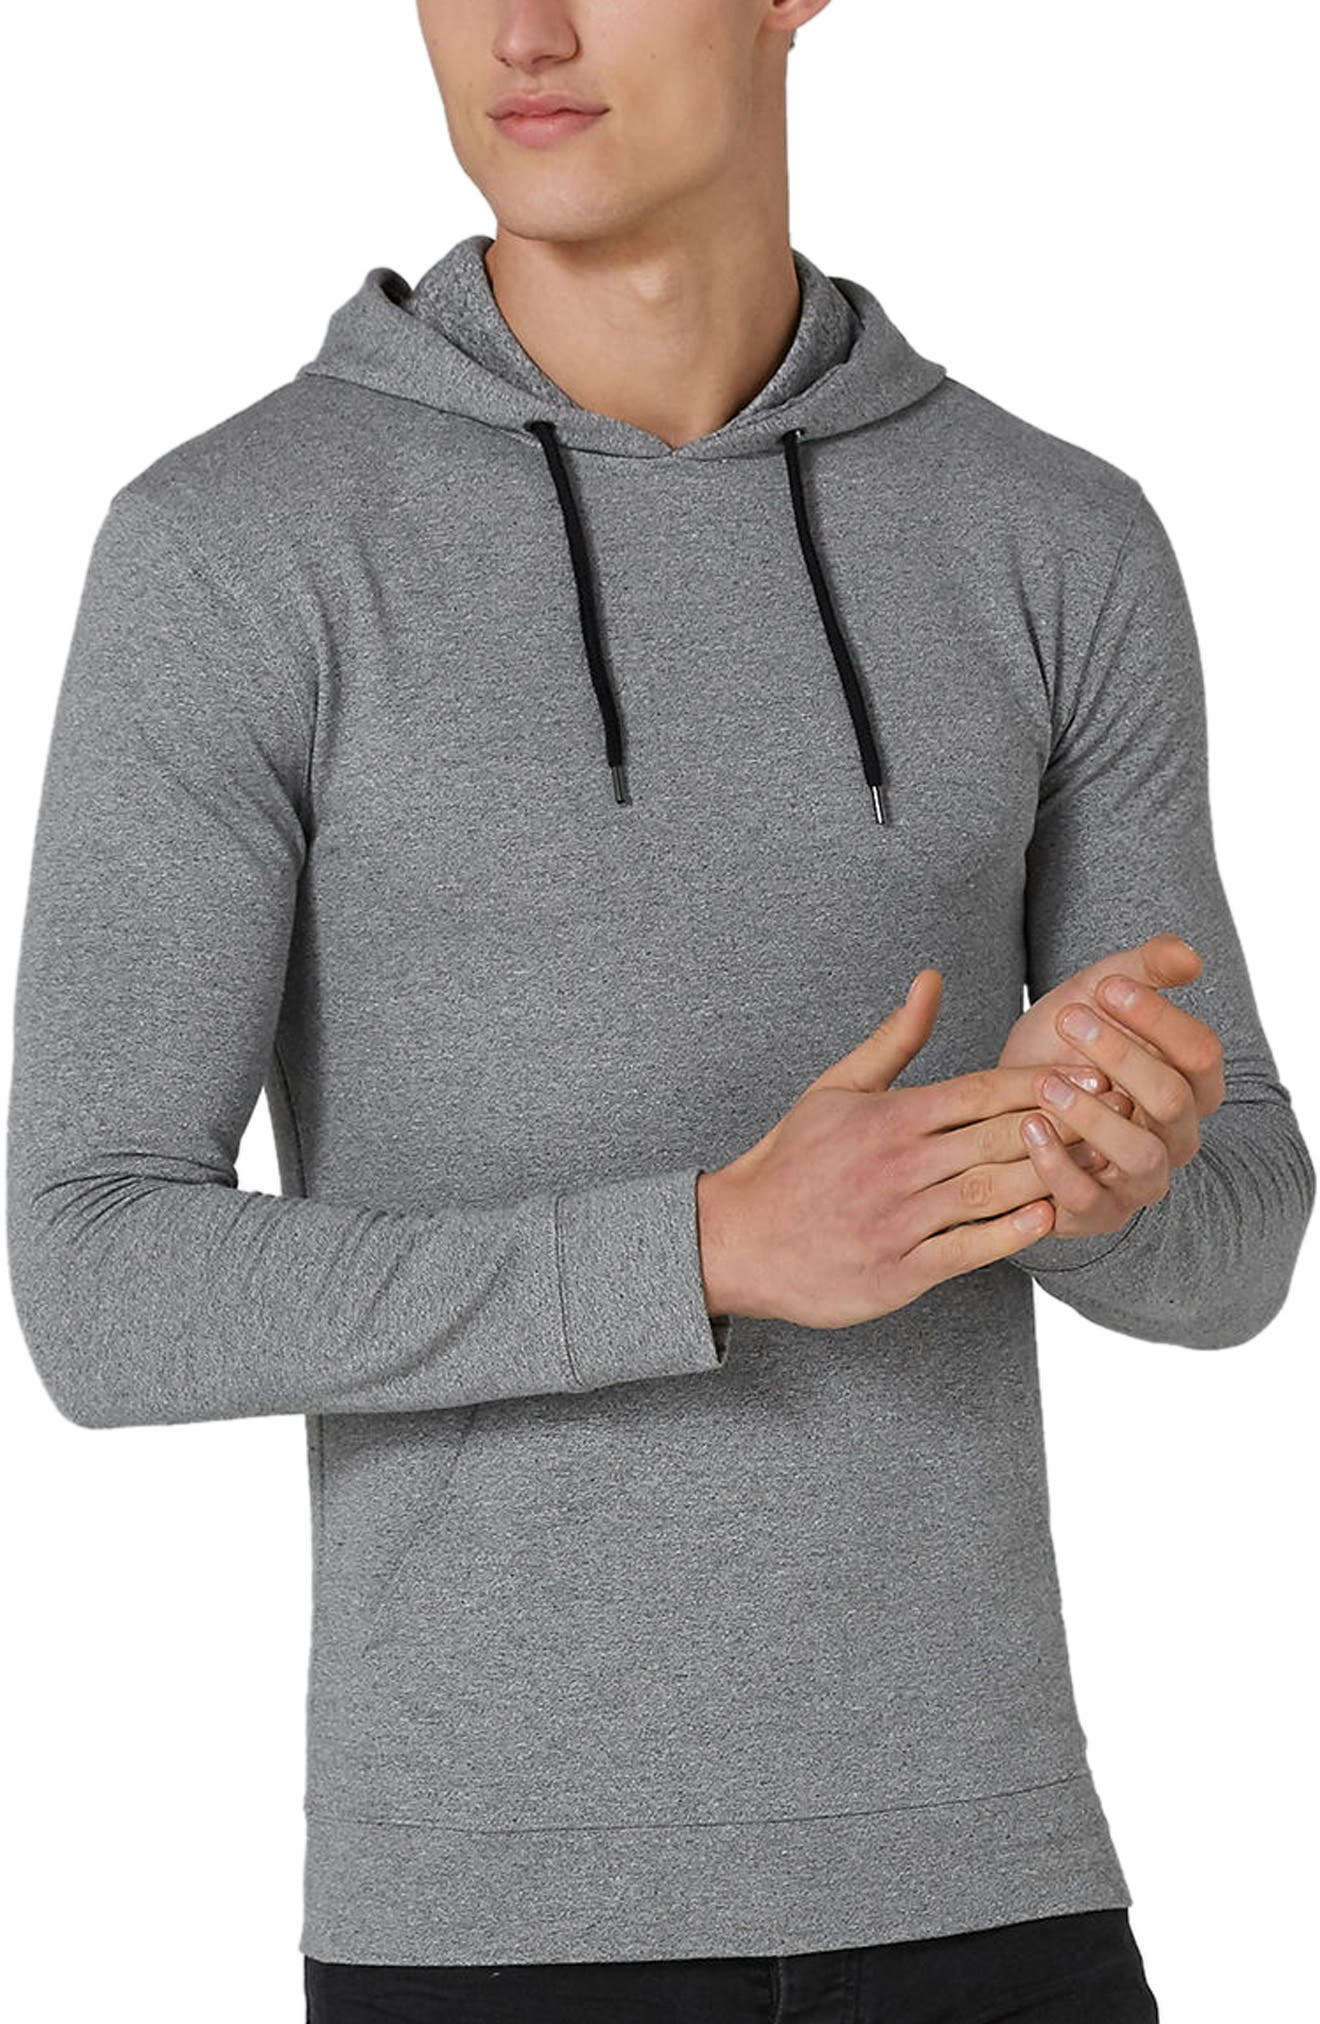 Muscle Fit Hoodie,                             Main thumbnail 1, color,                             Grey